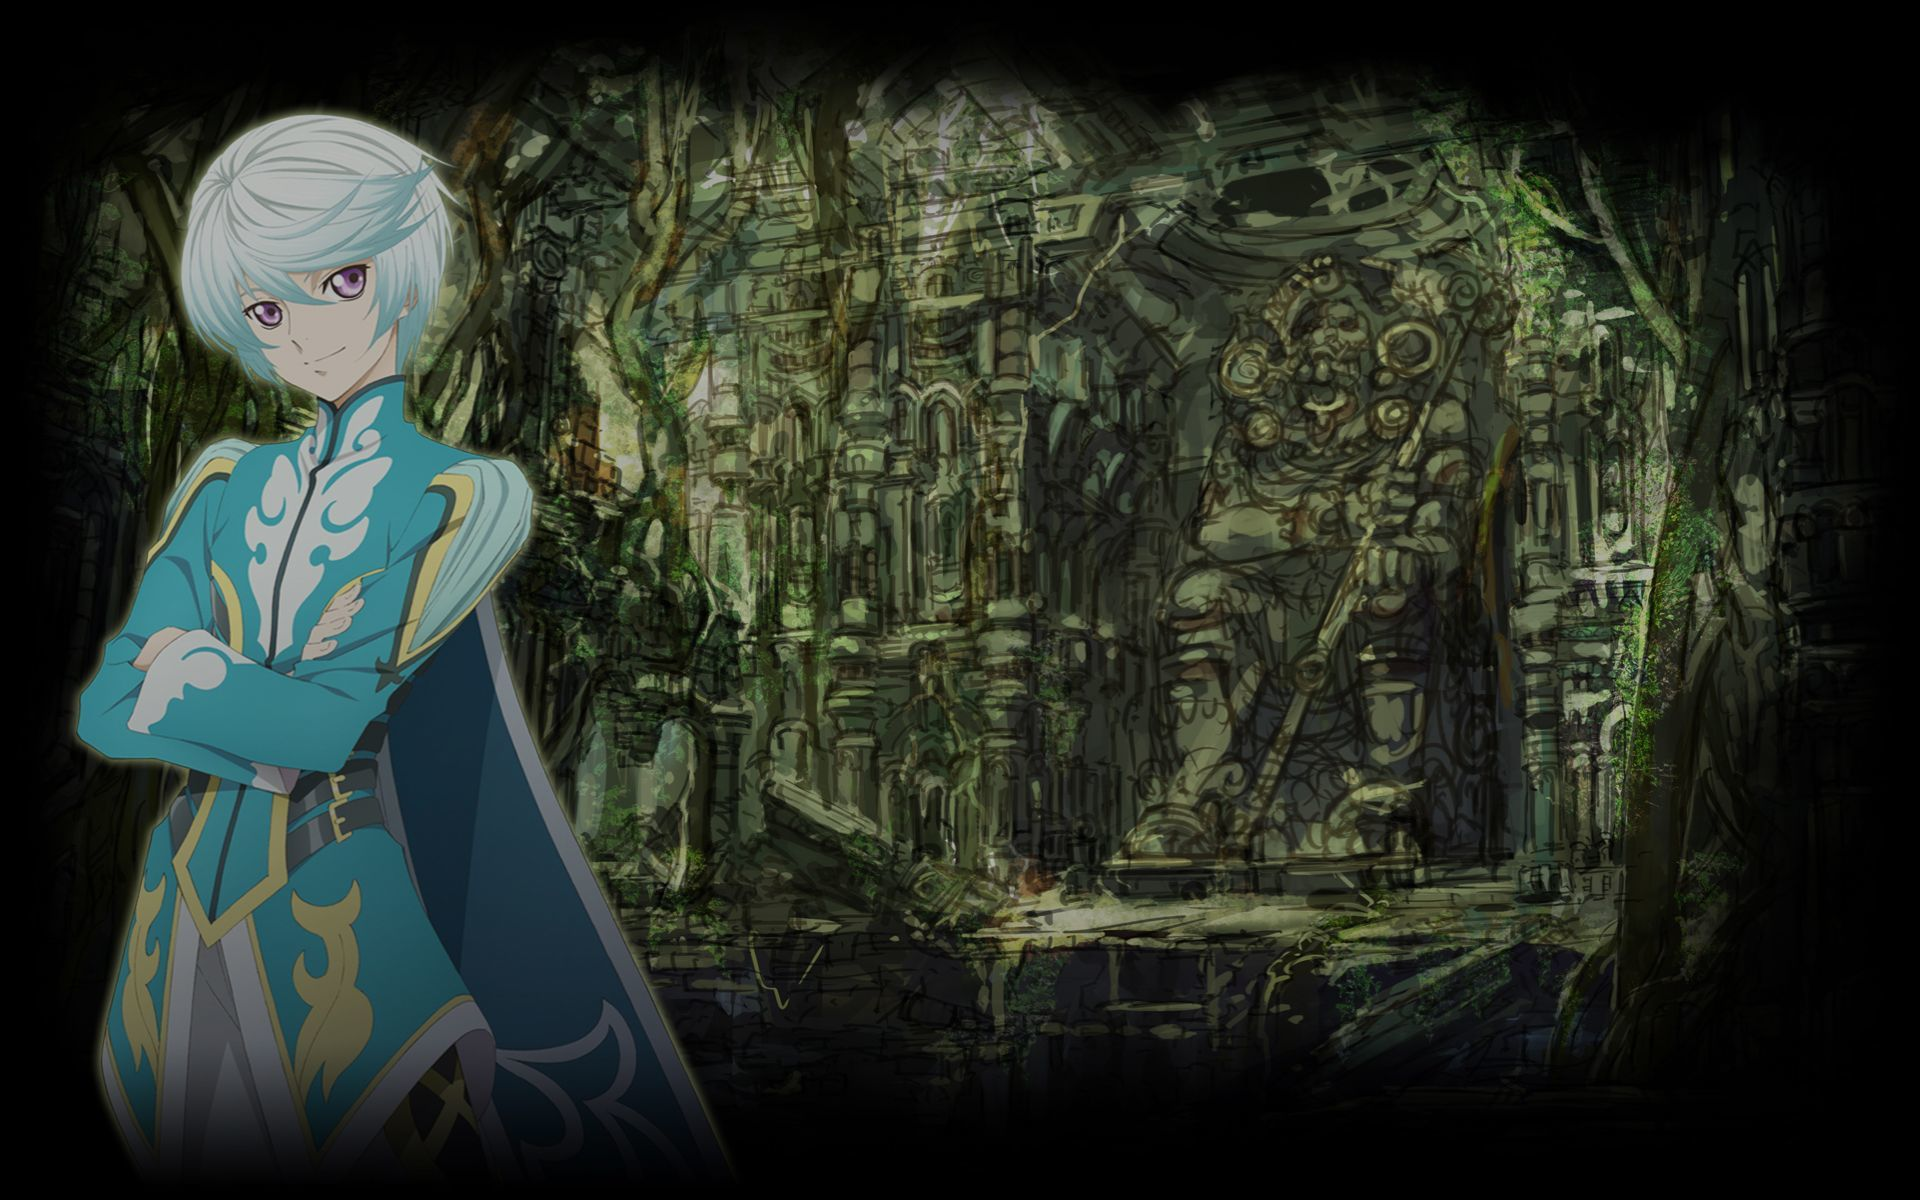 Tales Of Zestiria Wallpaper 012 Mikleo Wallpapers Ethereal Games